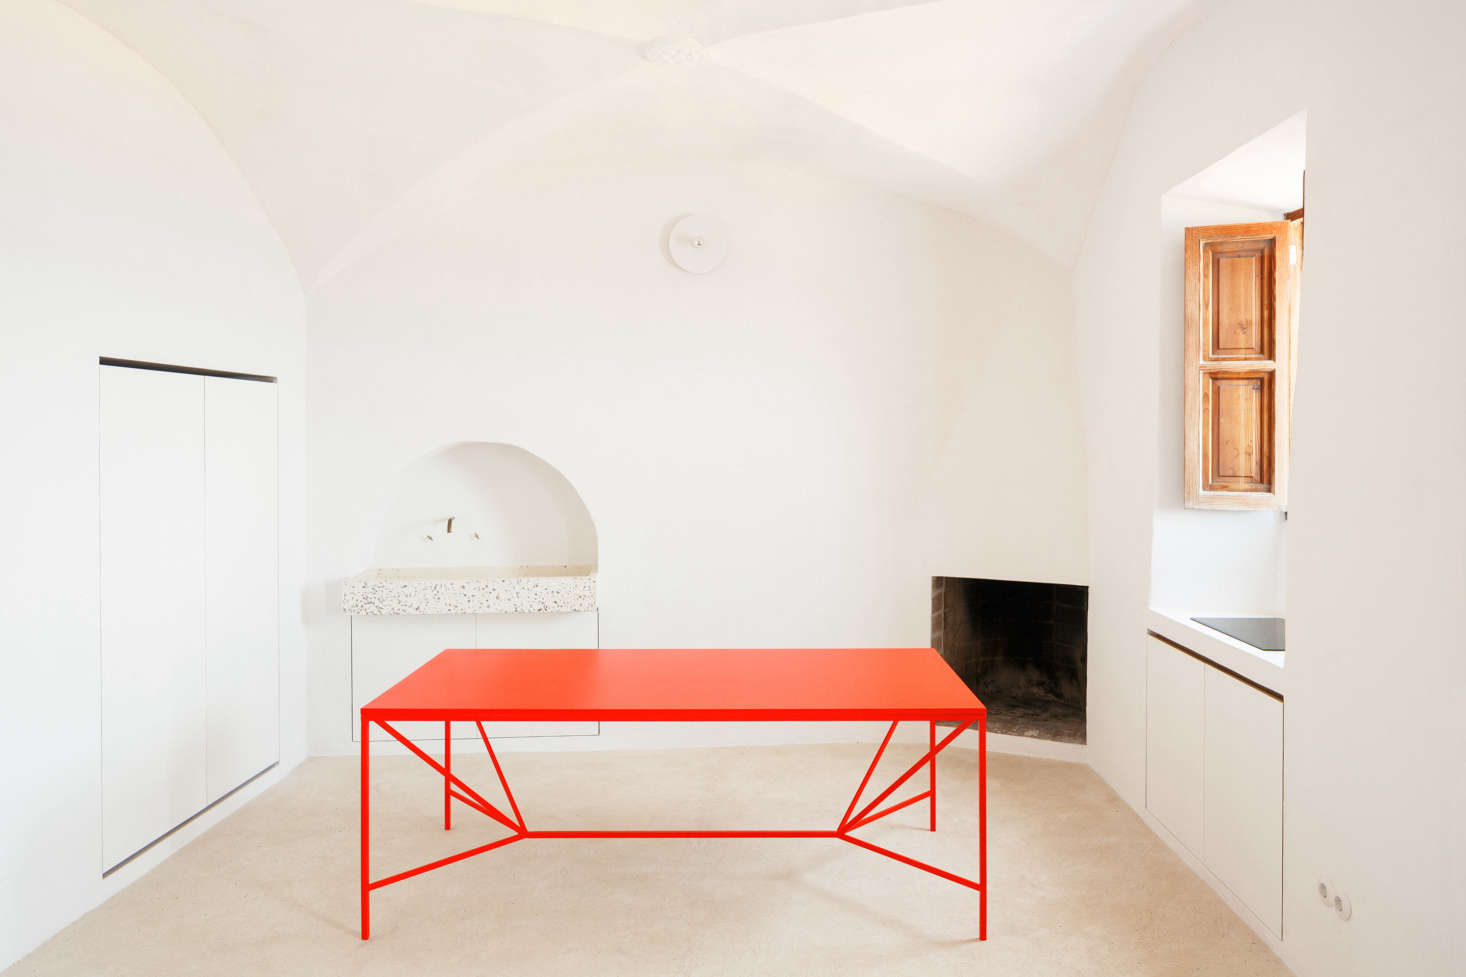 In the streamlined kitchen, nearly everything is concealed within the walls and windowsills. In one corner, the architects uncovered the original fireplace.